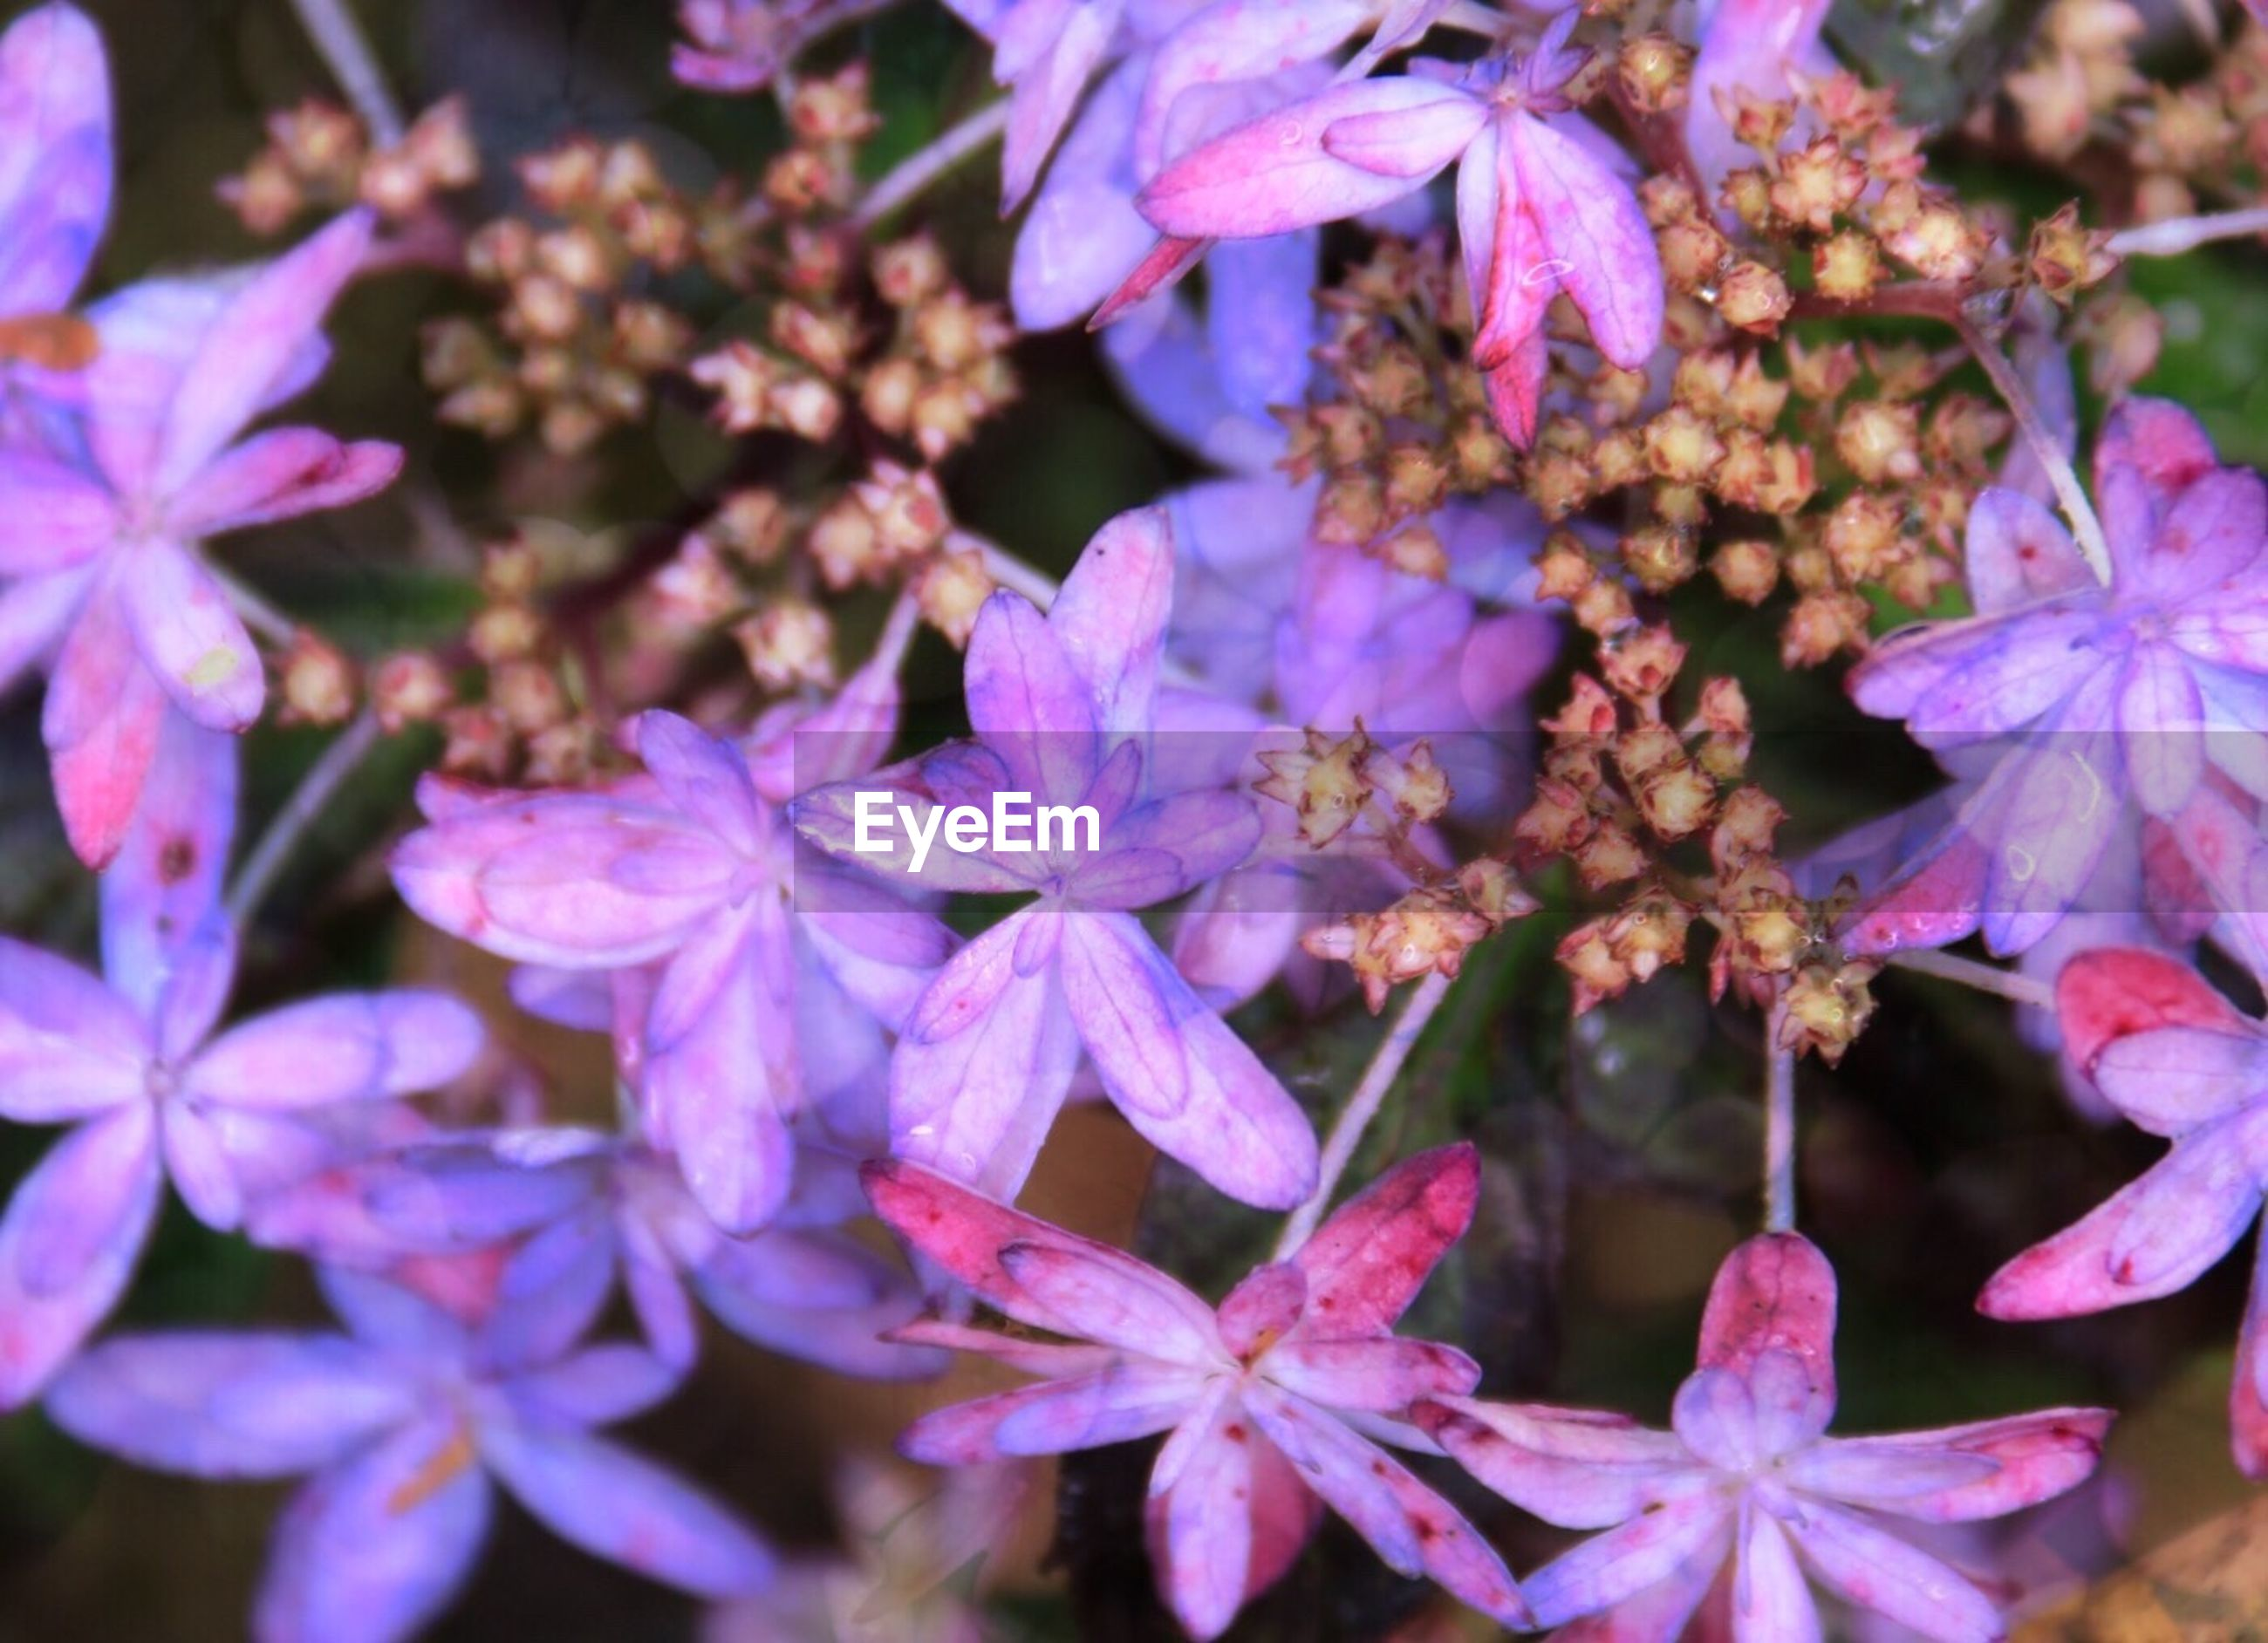 flower, freshness, purple, growth, fragility, petal, close-up, beauty in nature, nature, plant, flower head, focus on foreground, blooming, pink color, selective focus, backgrounds, abundance, full frame, outdoors, day